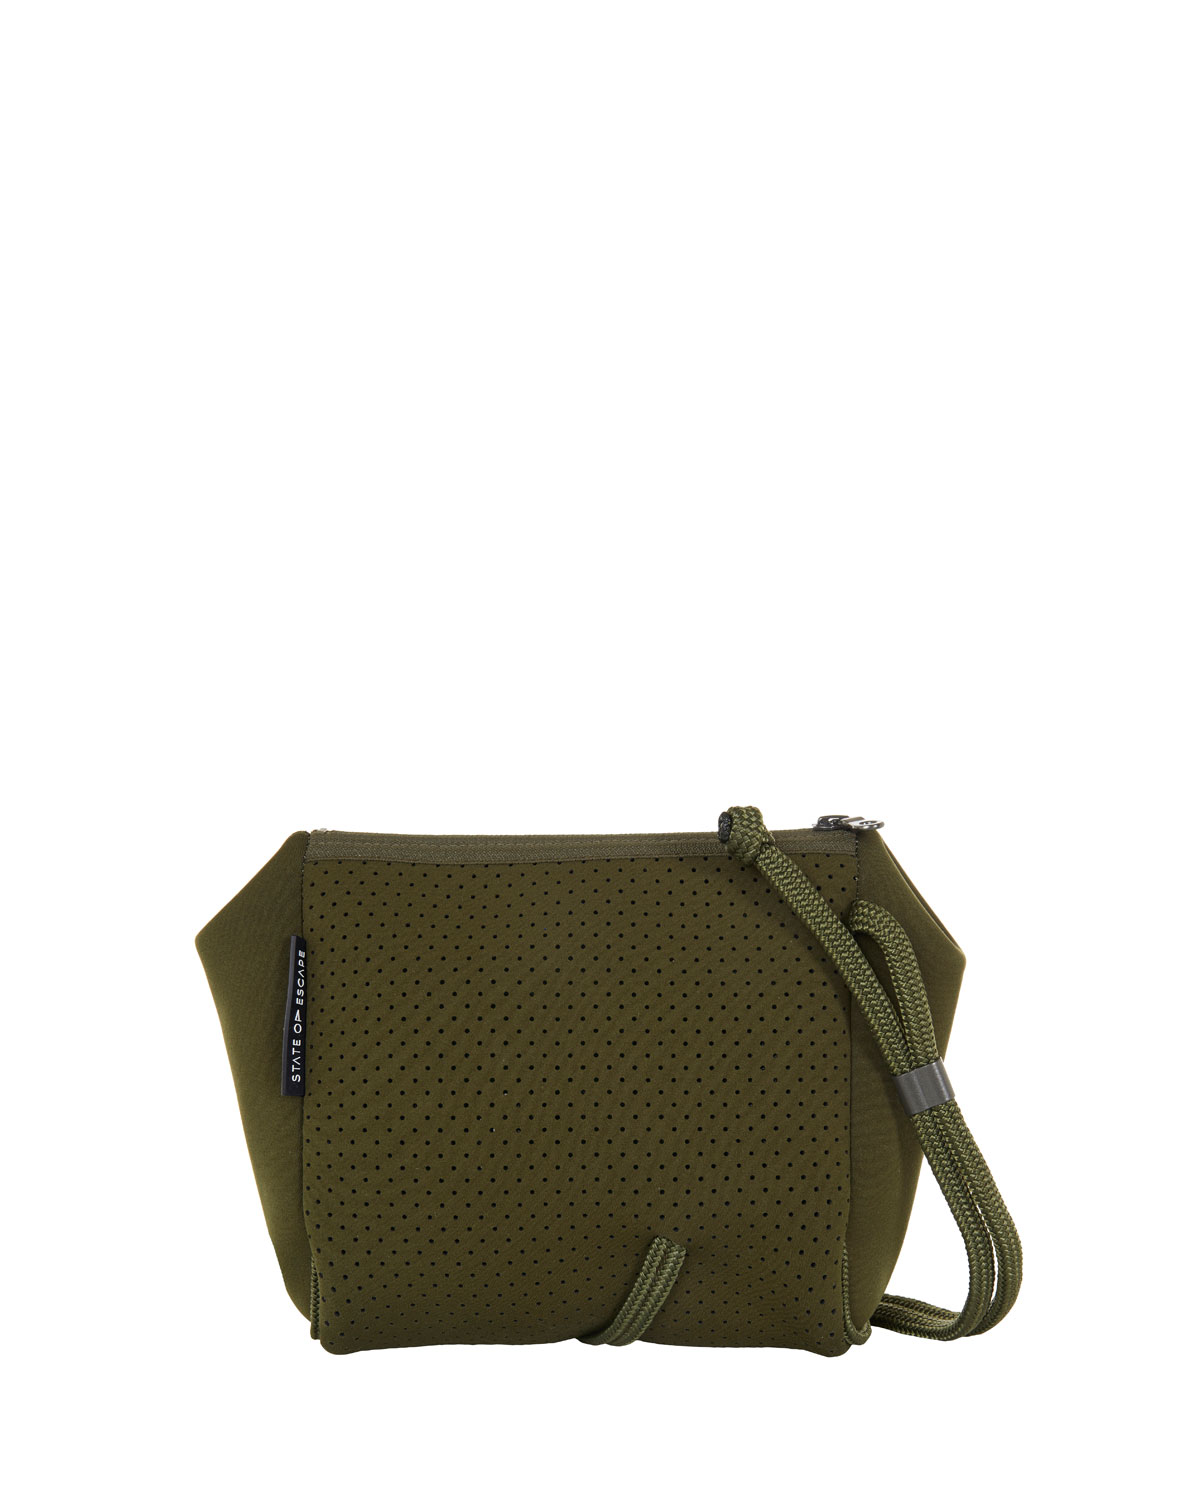 Festival Mini Crossbody Bag, Khaki